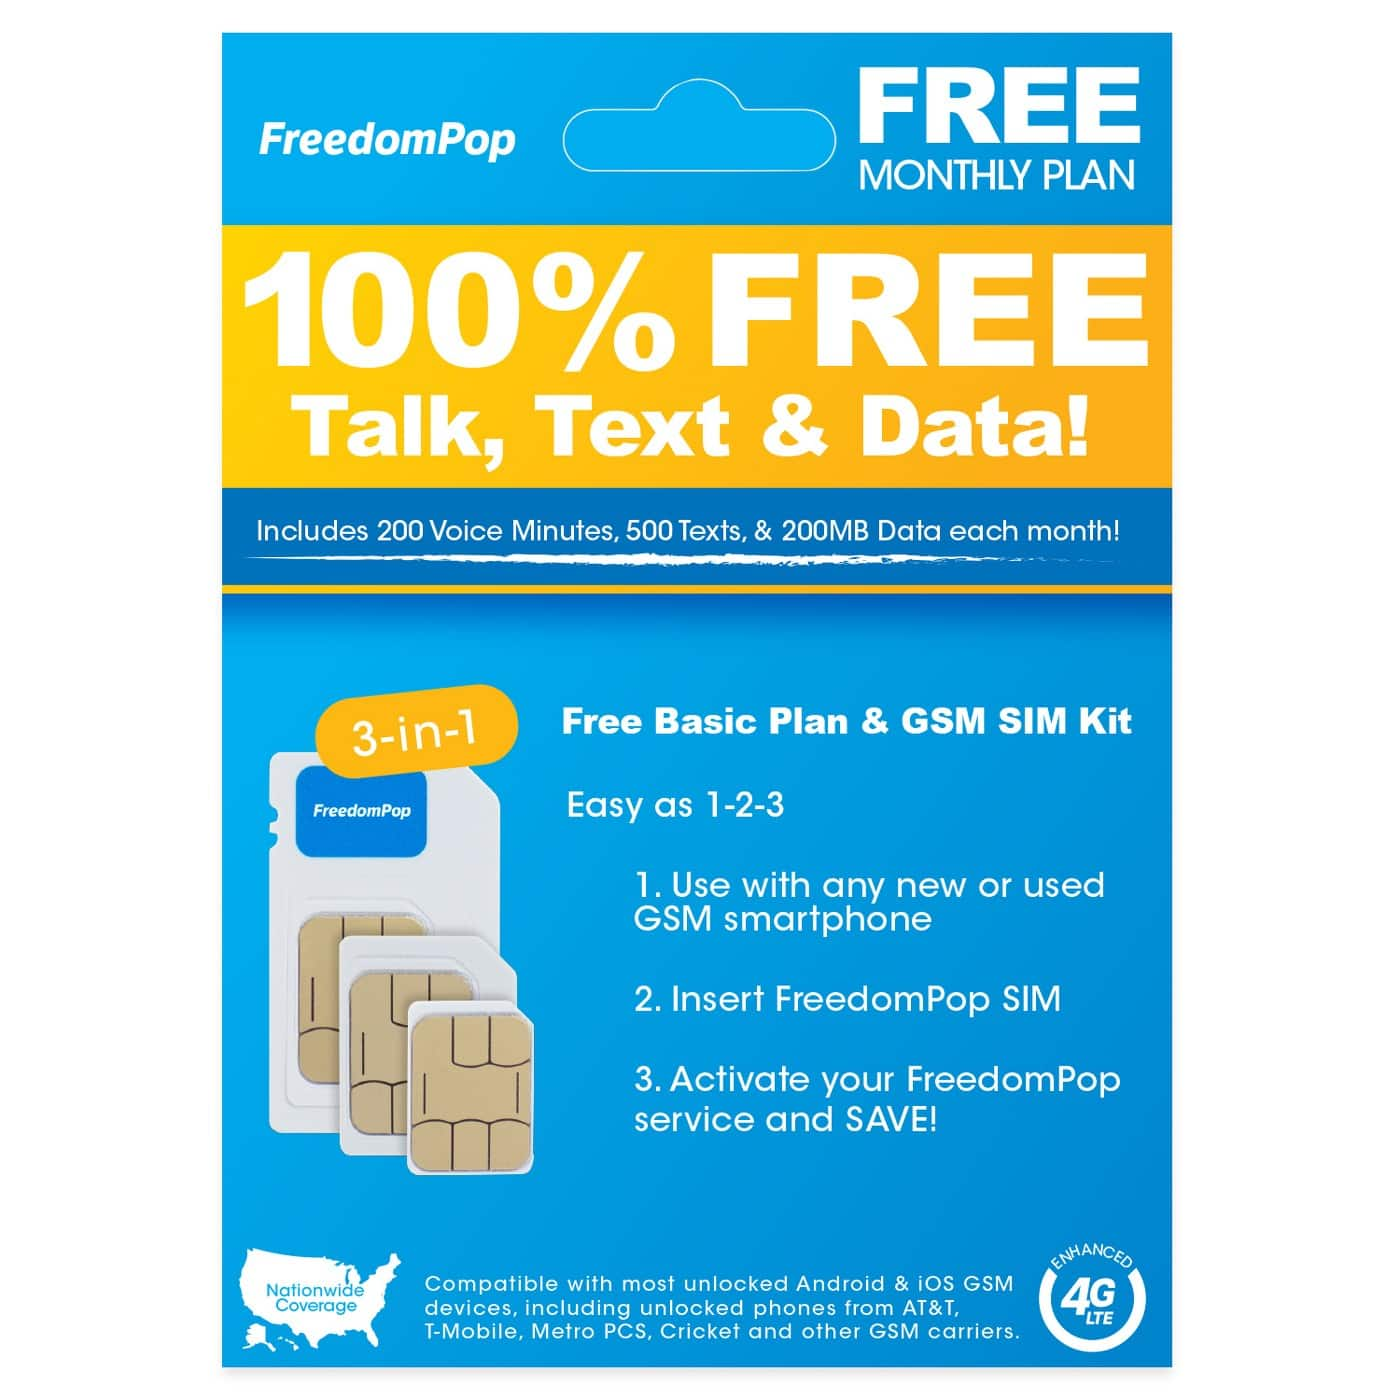 $0.99 or $0.94 FreedomPop Nationwide 4G LTE 3-in-1 Basic Free SIM Card Kit